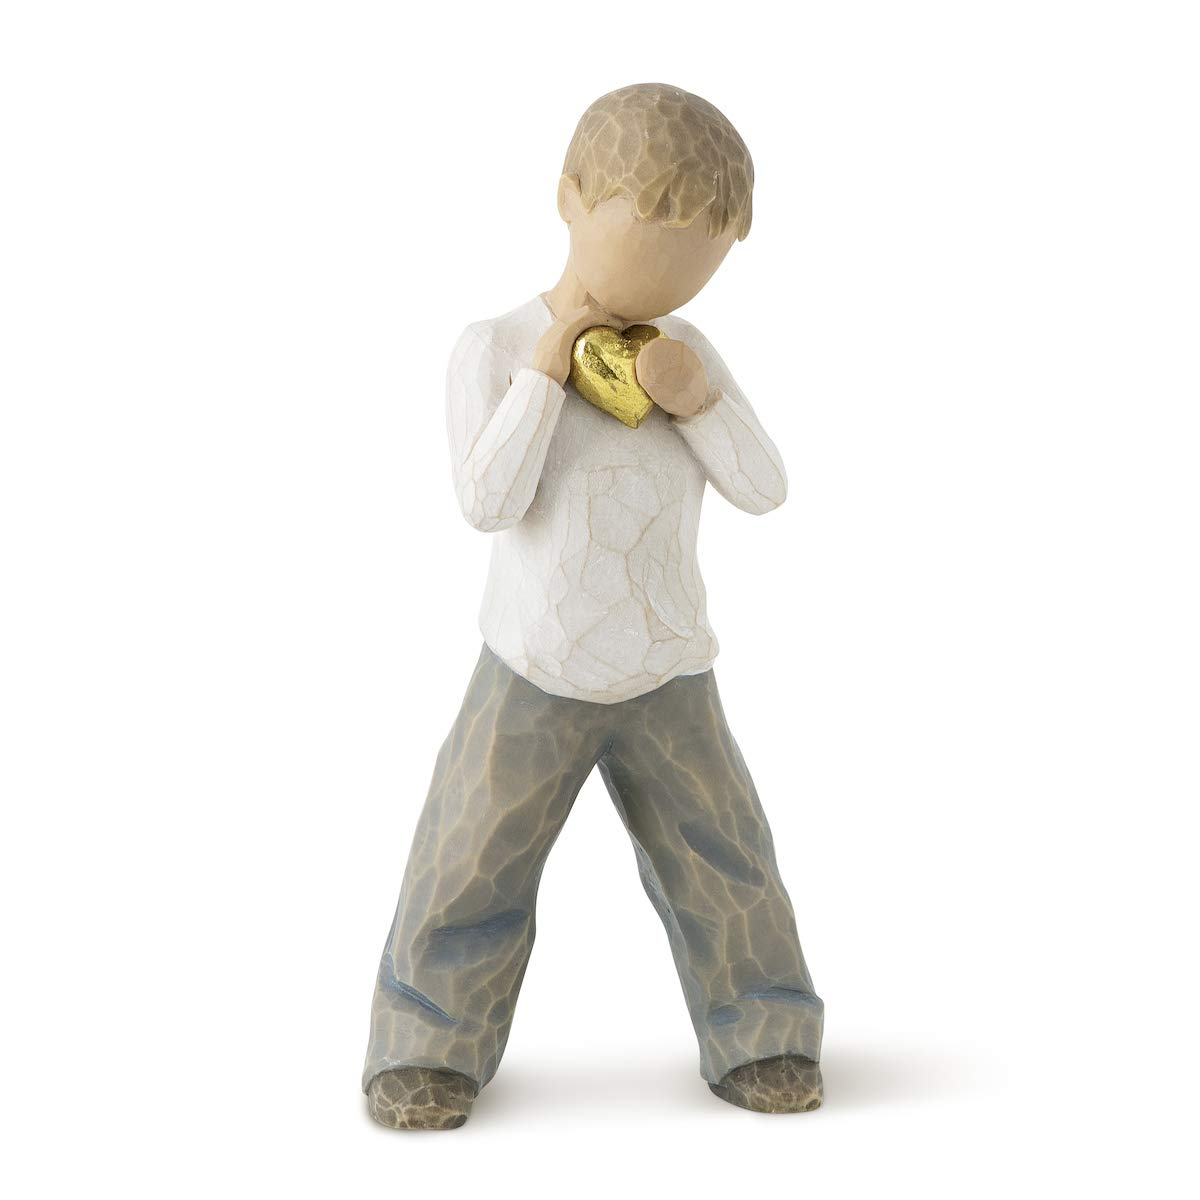 Willow Tree Heart of Gold, Sculpted Hand-Painted Figure